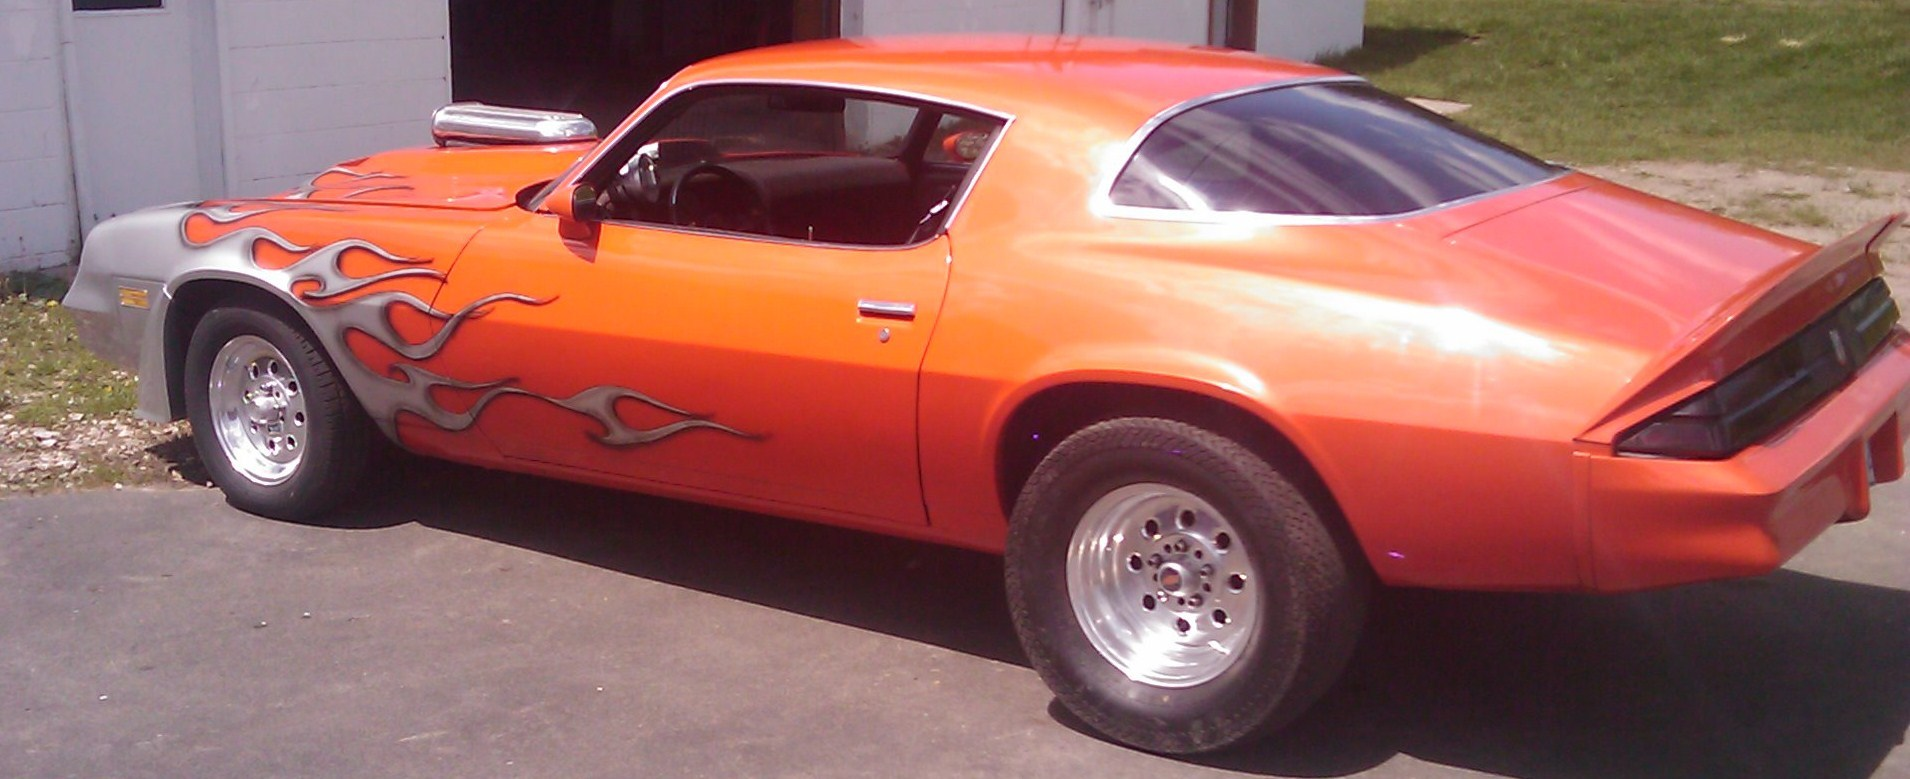 johnv405 1978 Chevrolet Camaro 12949862